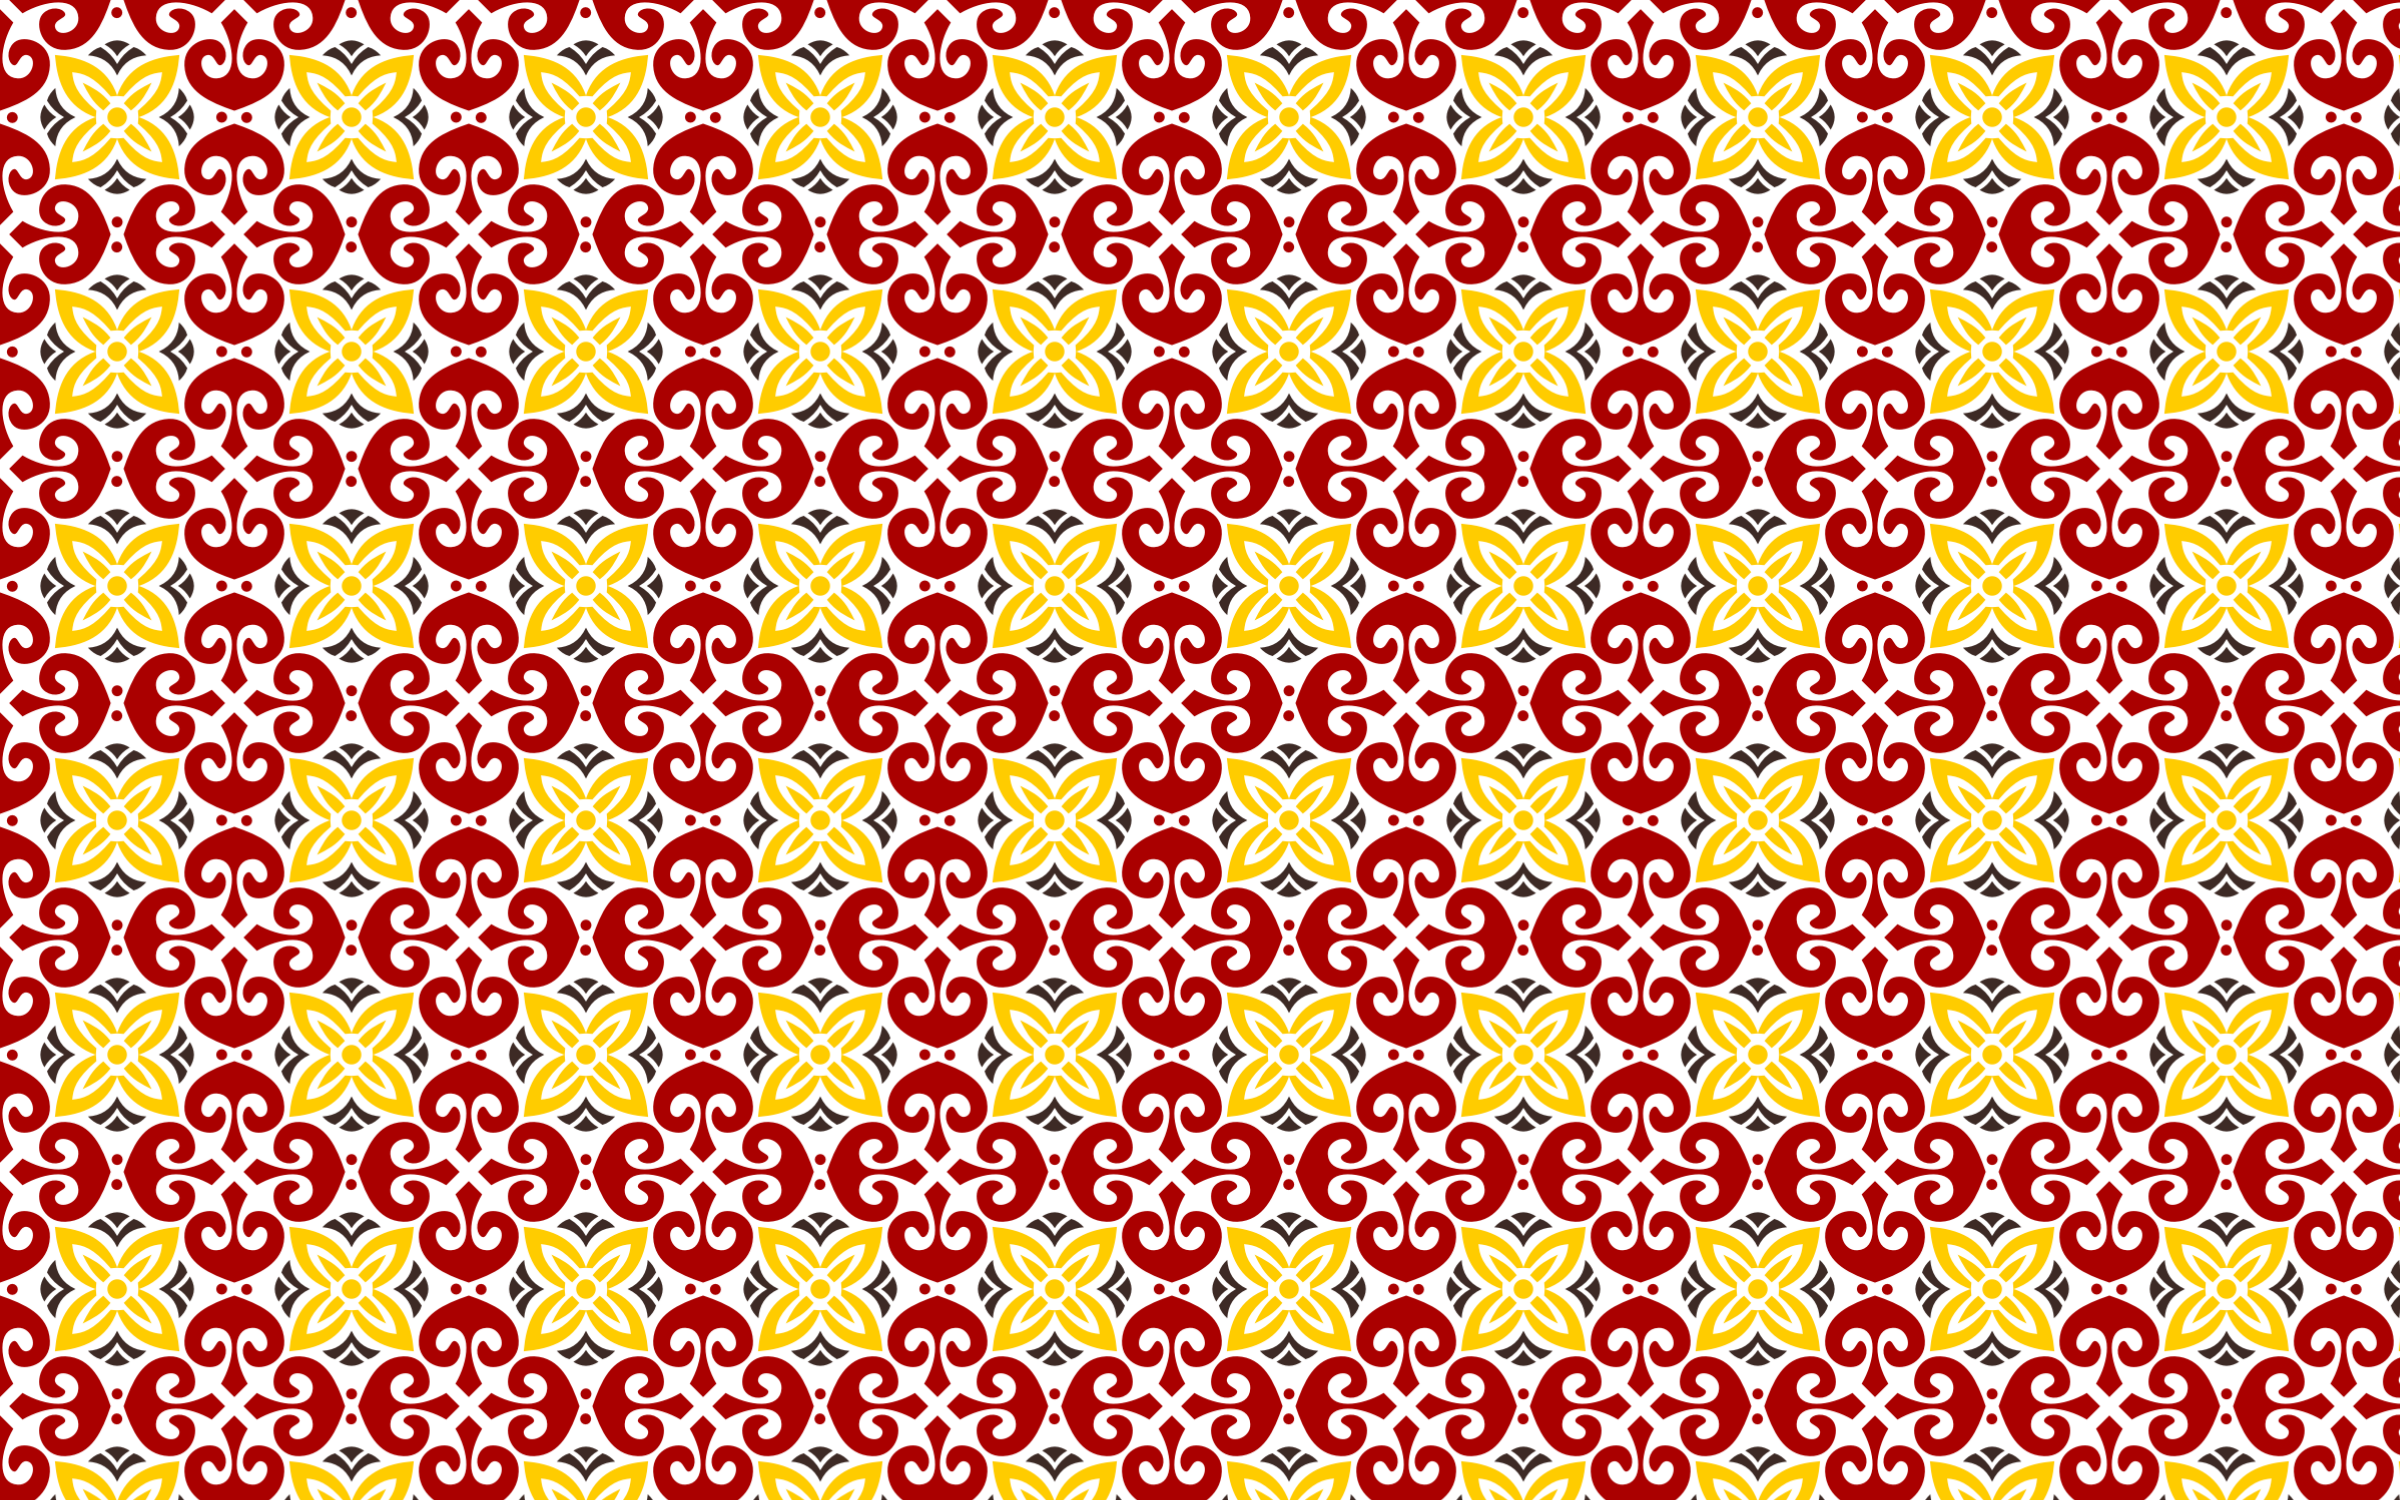 Seamless Gustavo Rezende's Tile Pattern by GDJ